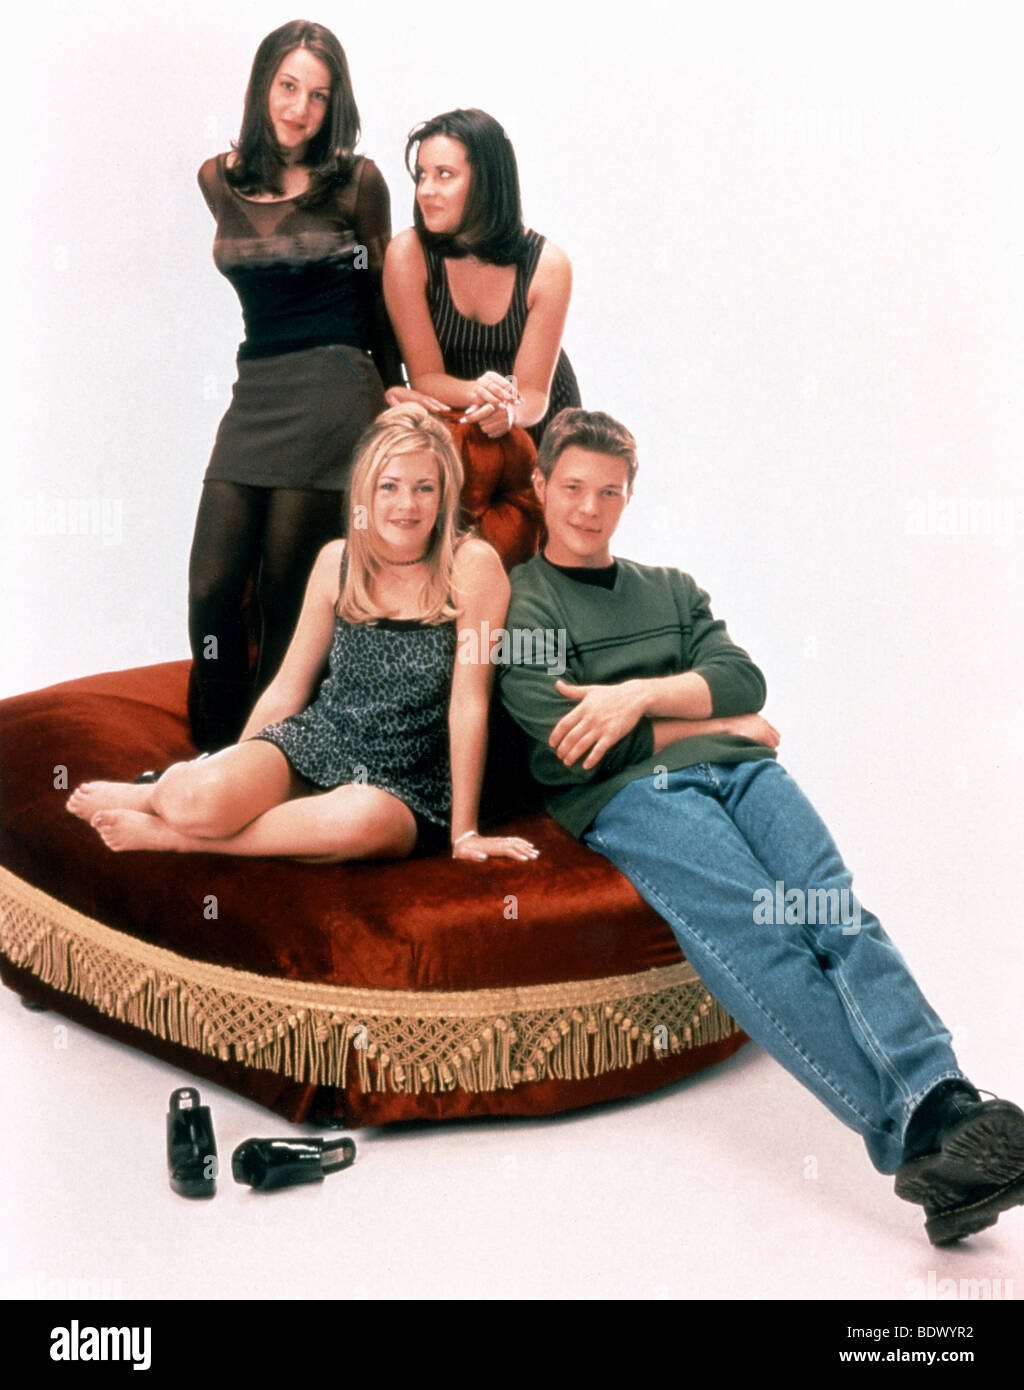 Sabrina The Teenage Witch Viacom Tv Series With Melissa Joan Hart Stock Photo Alamy All orders are custom made and most ship worldwide within 24 hours. https www alamy com stock photo sabrina the teenage witch viacom tv series with melissa joan hart 25771510 html